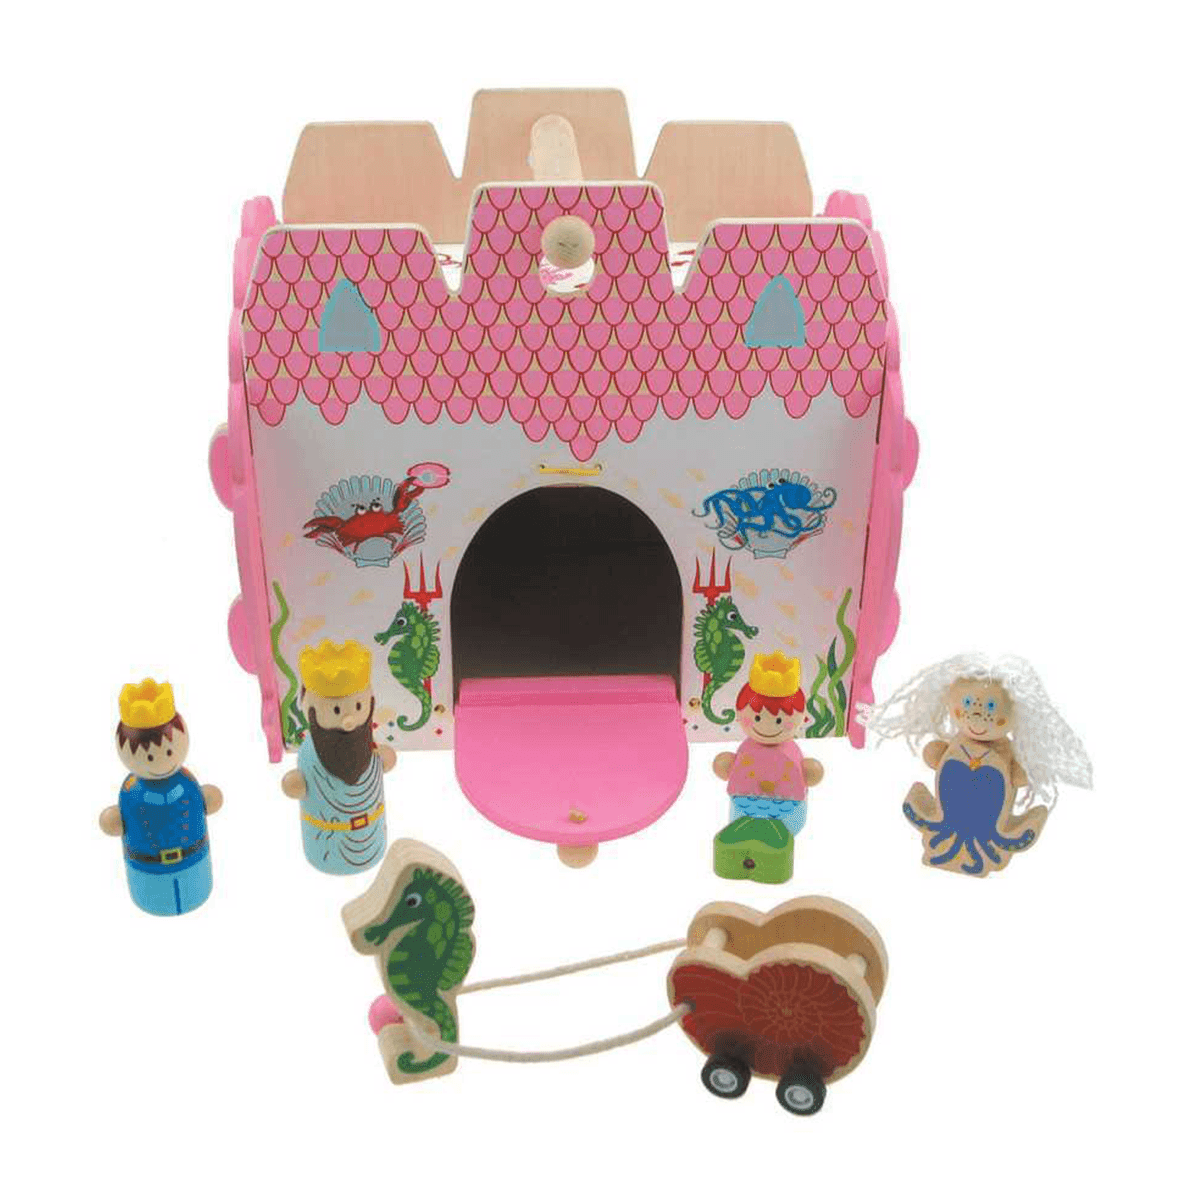 Mermaid Playset Koala Dream